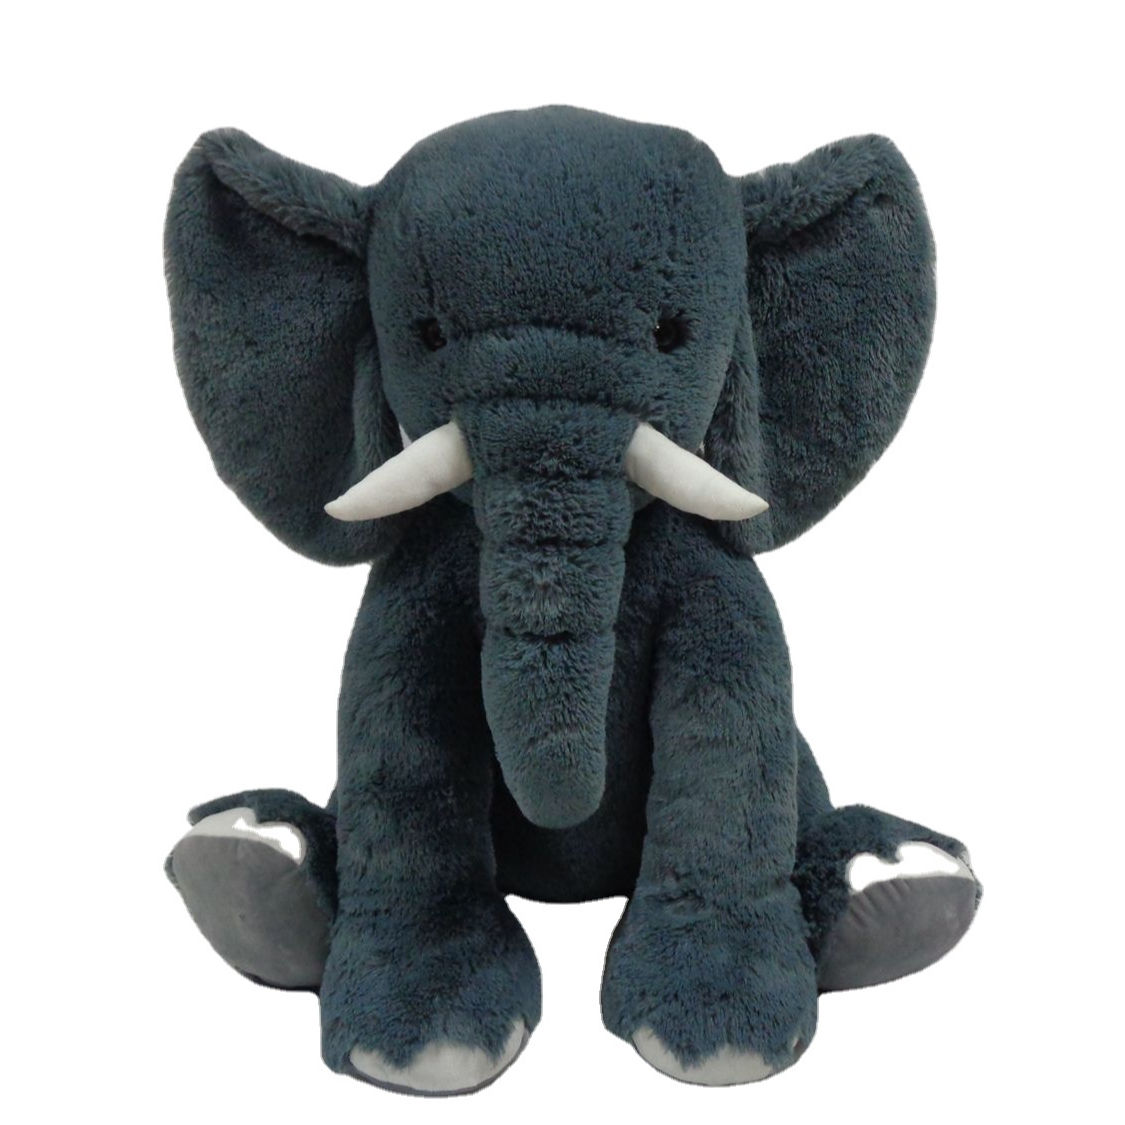 Factory New Design Wholesale Cheap High Quality Super Soft For Kids Stuffed Animal Plush Elephant